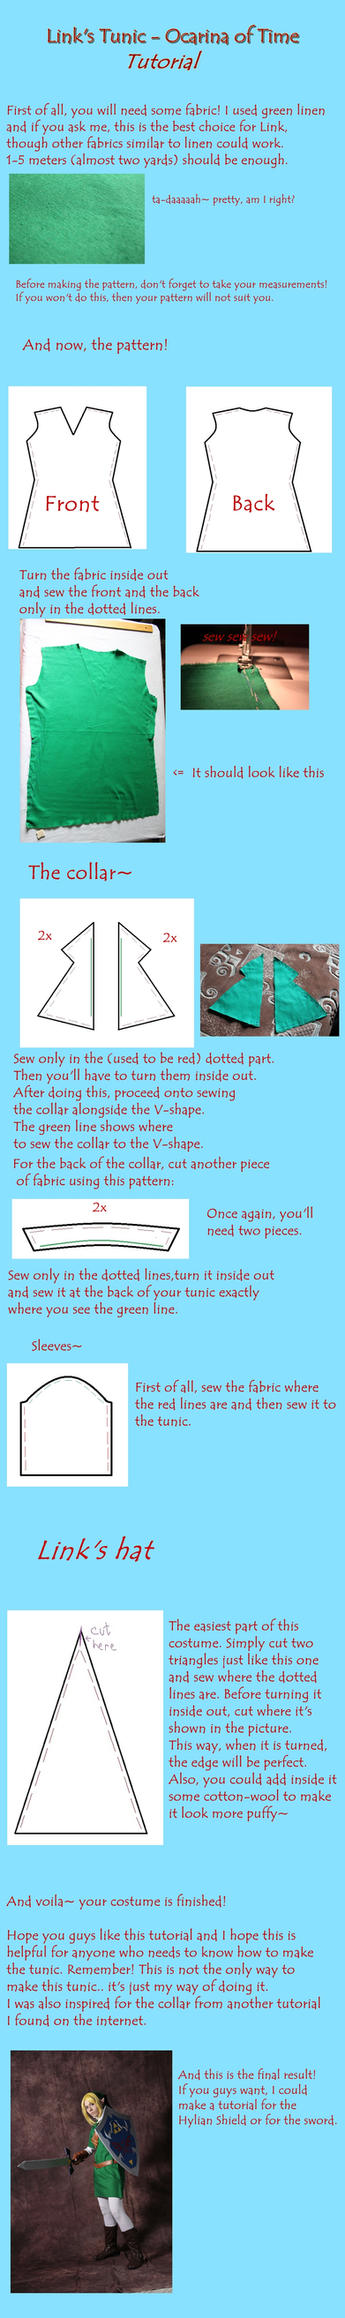 Link tunic tutorial - Ocarina of Time by winged--icarus